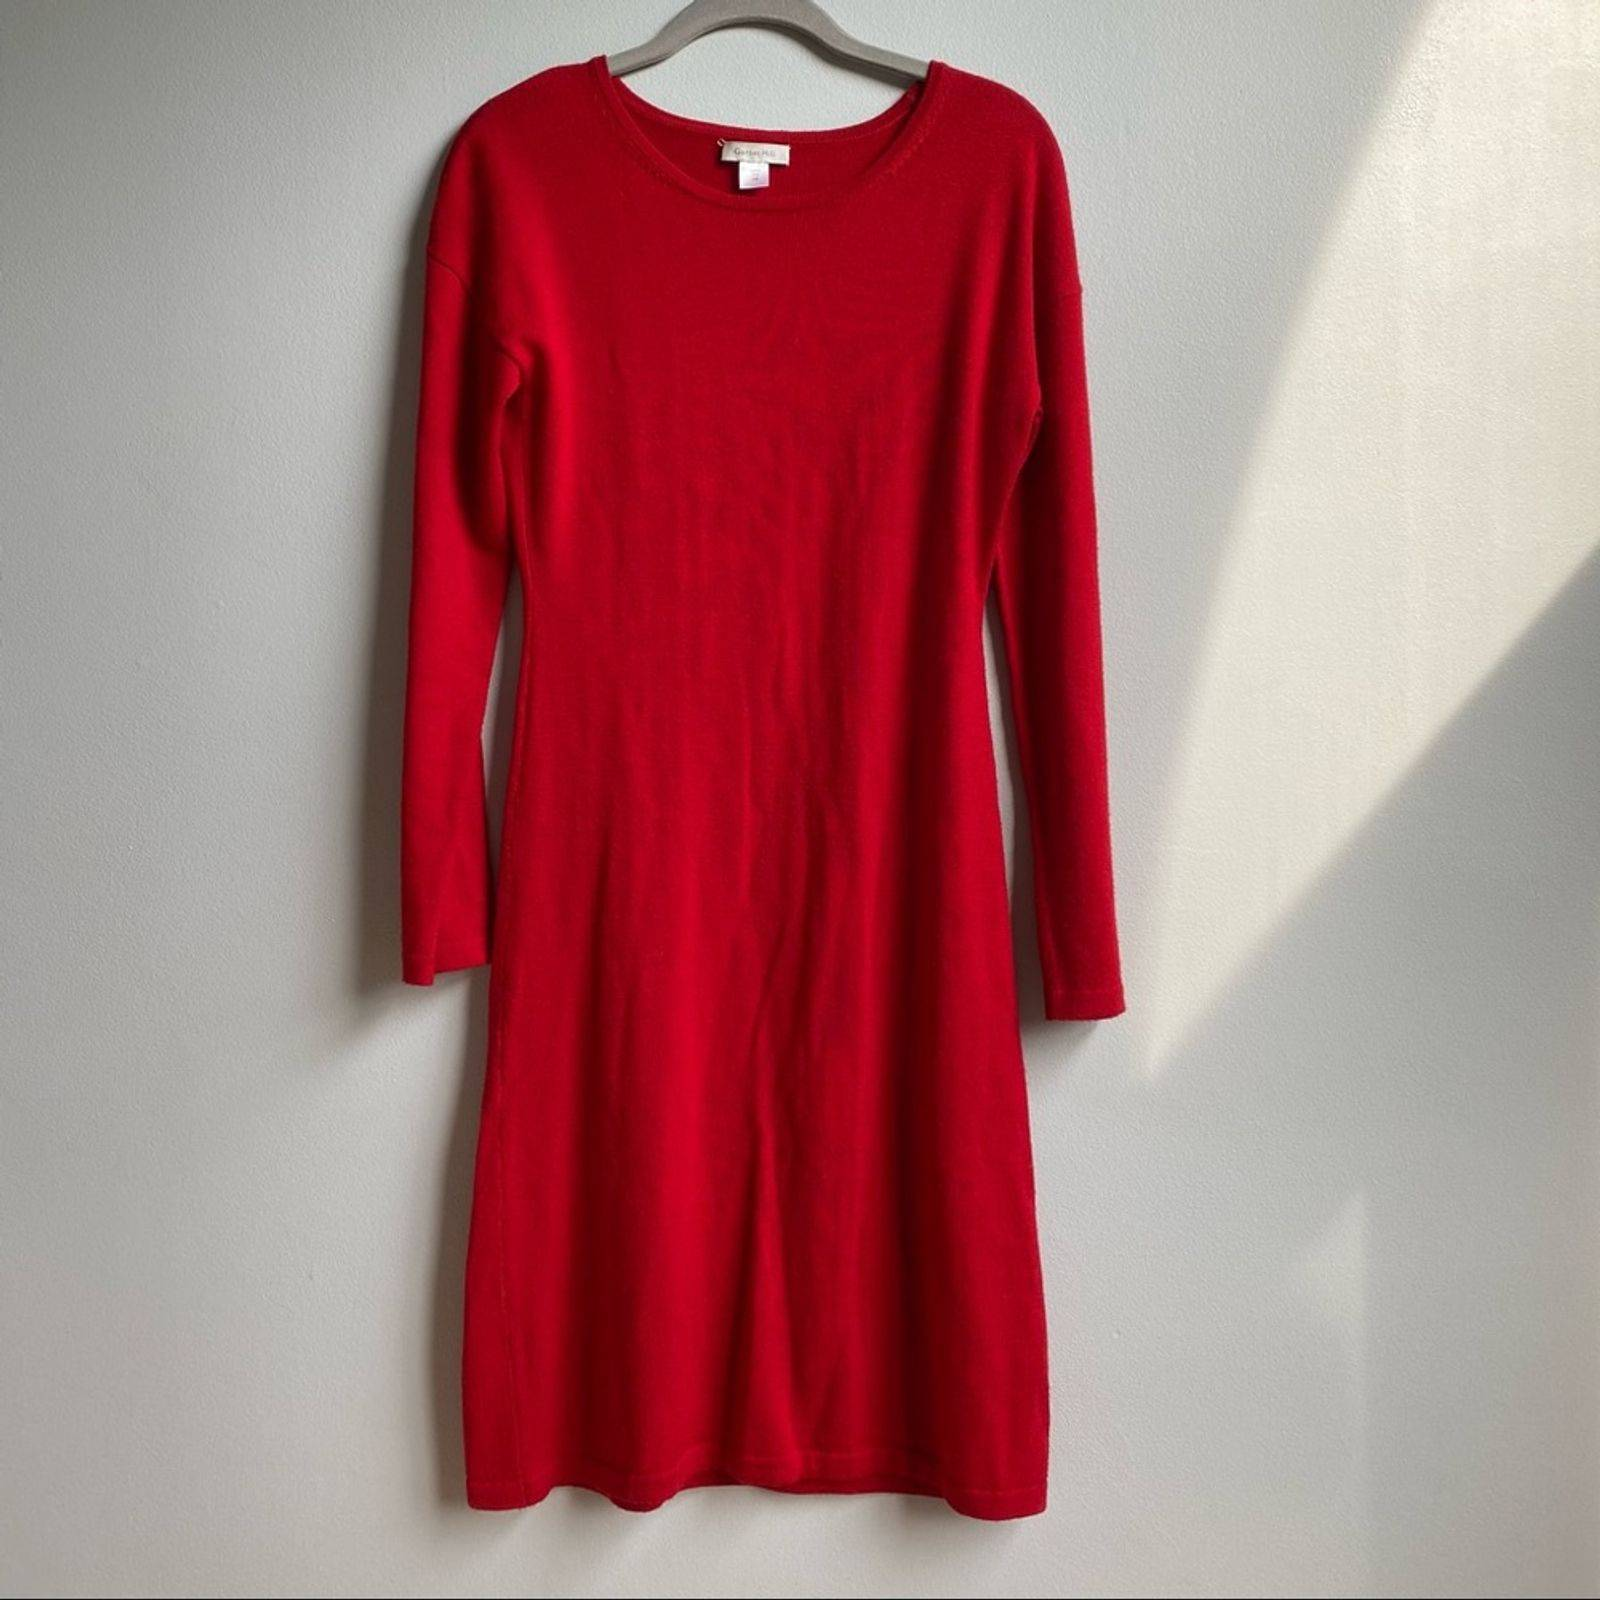 Garnet Hill 100% Wool Midi Sweater Dress